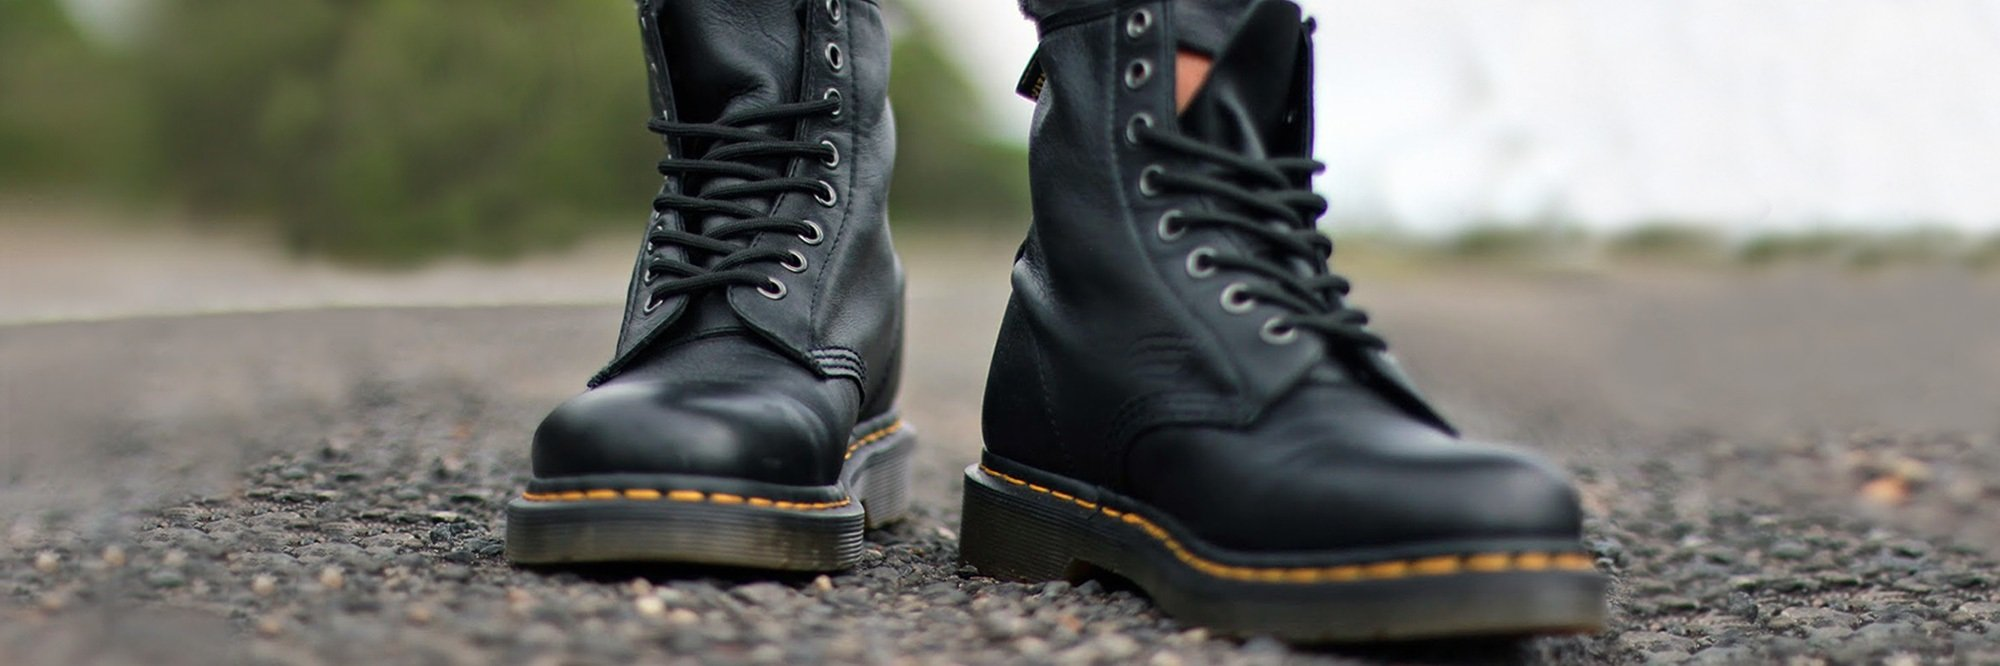 Dr_Martens_for_life_banner